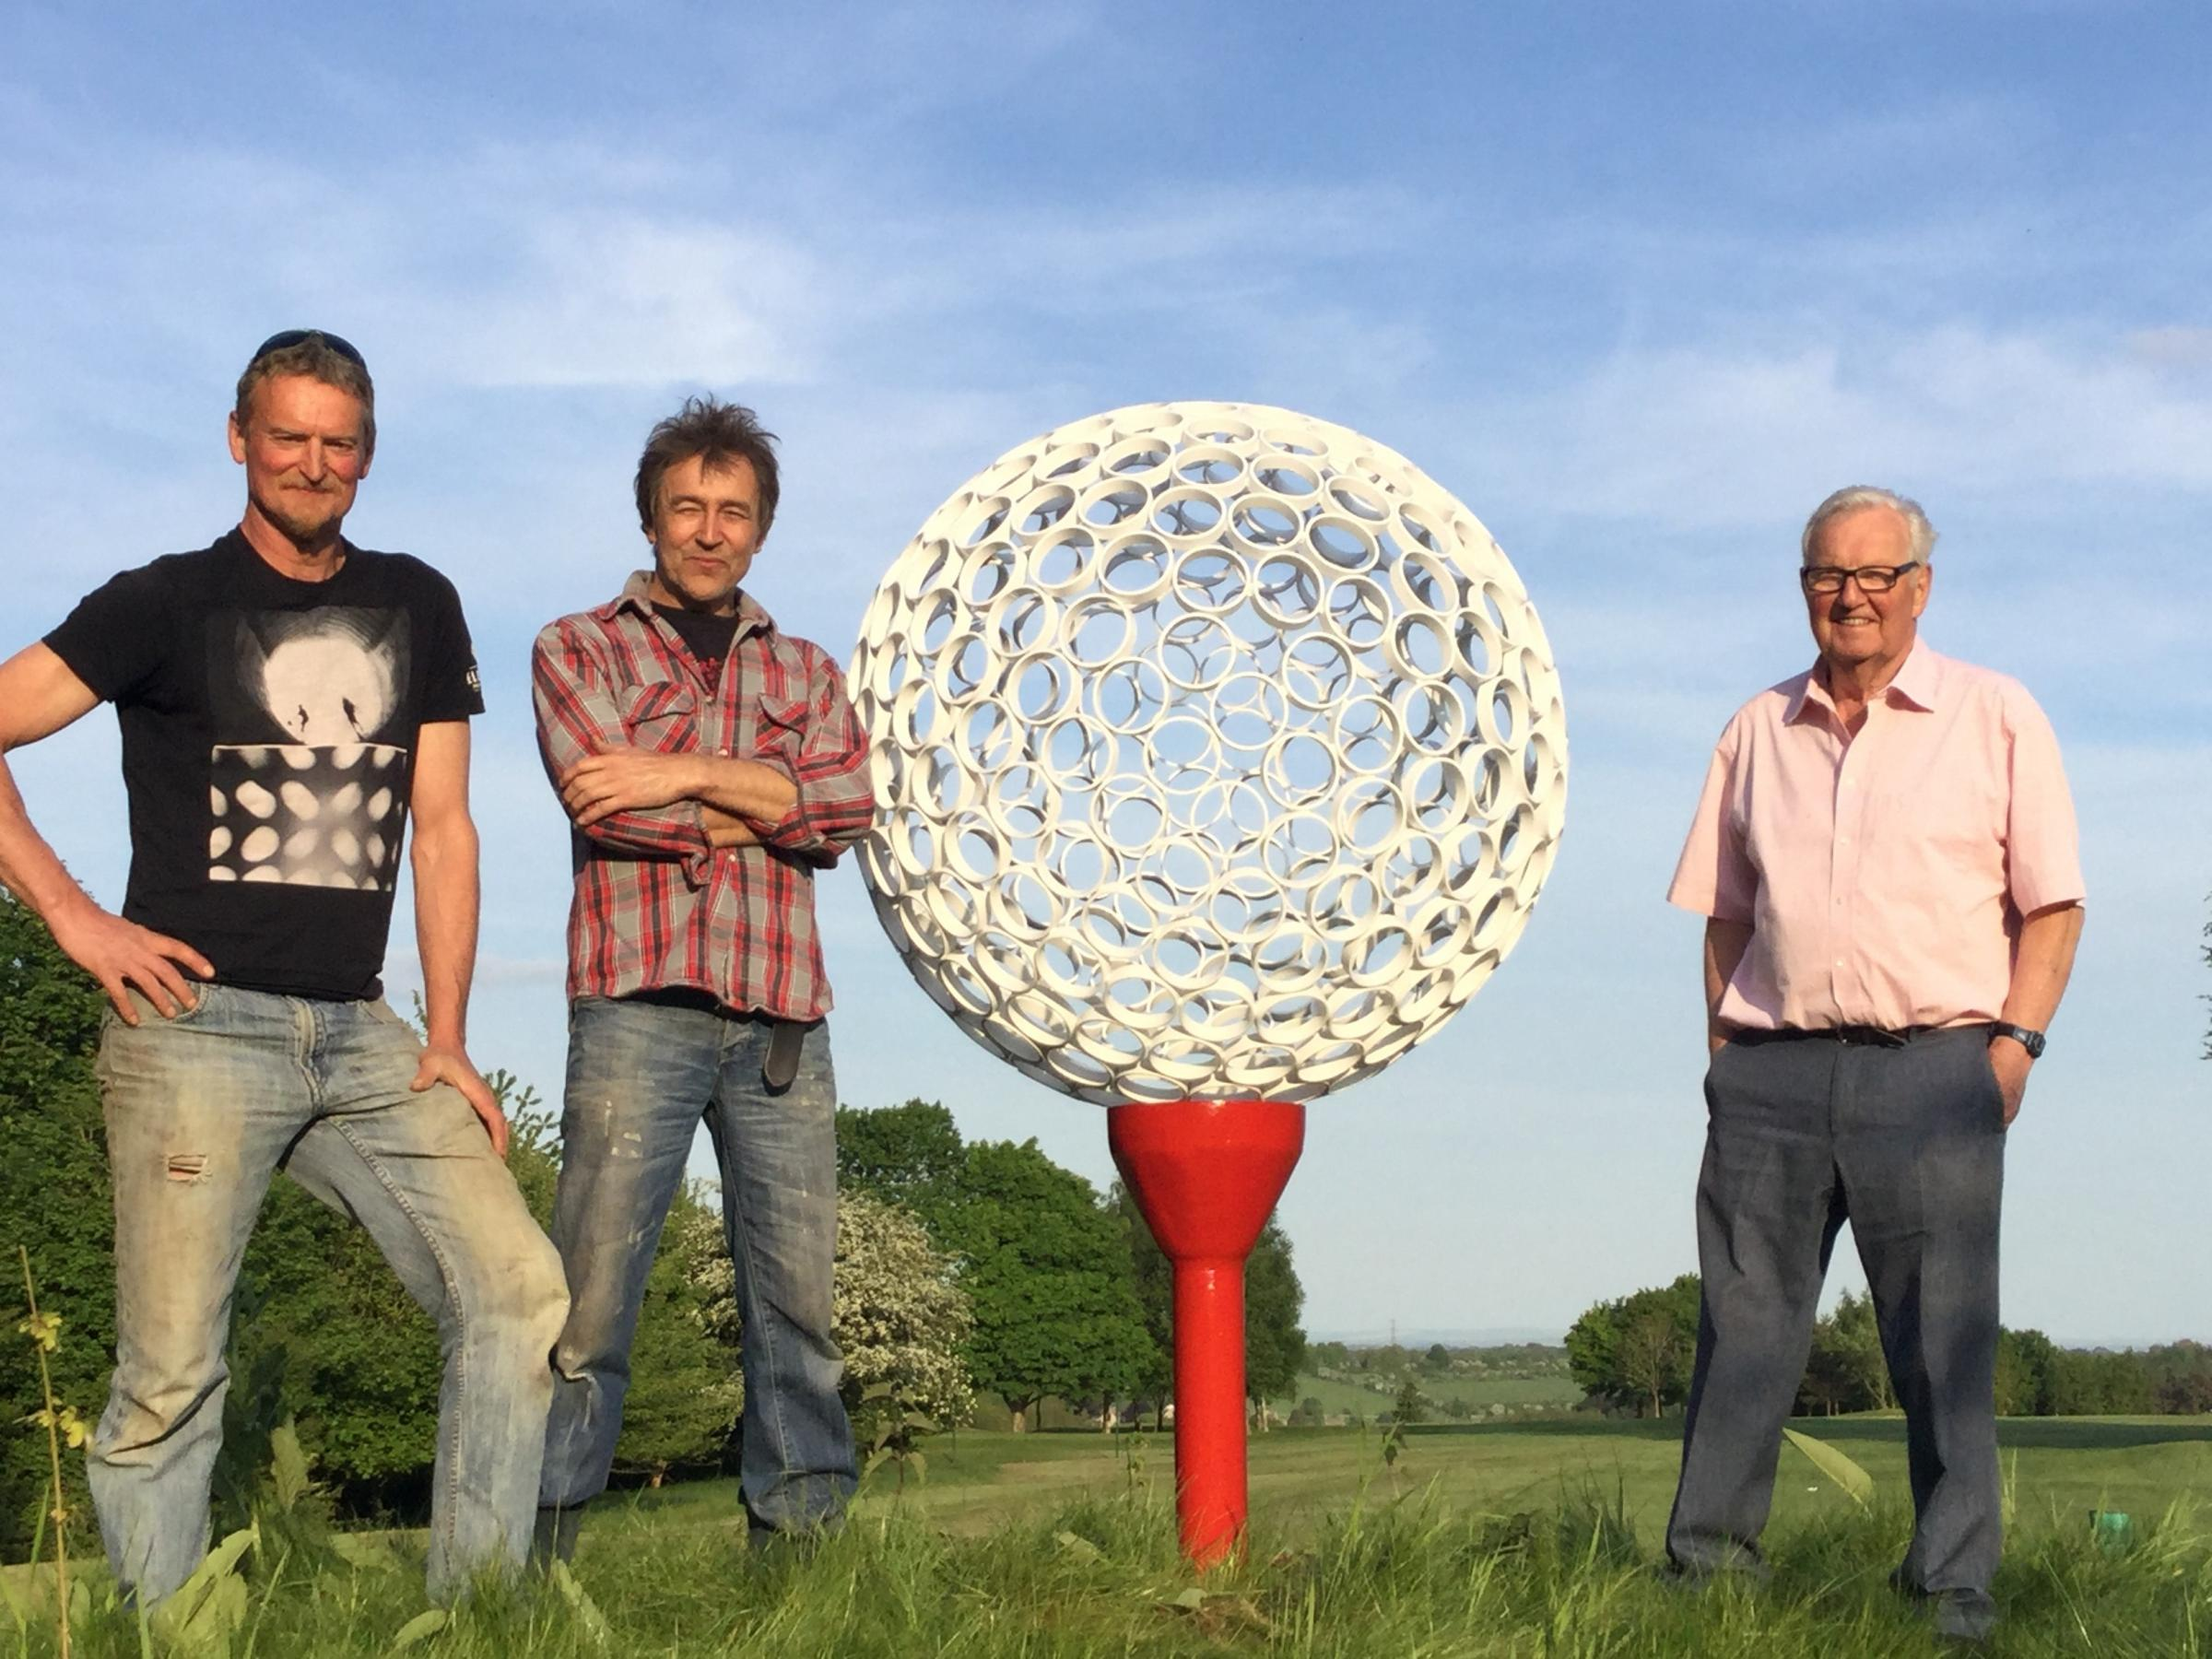 Pictured is David Hartland from the sculpture park along with Artist Jayson Baylis and organiser Alan Macdonald.